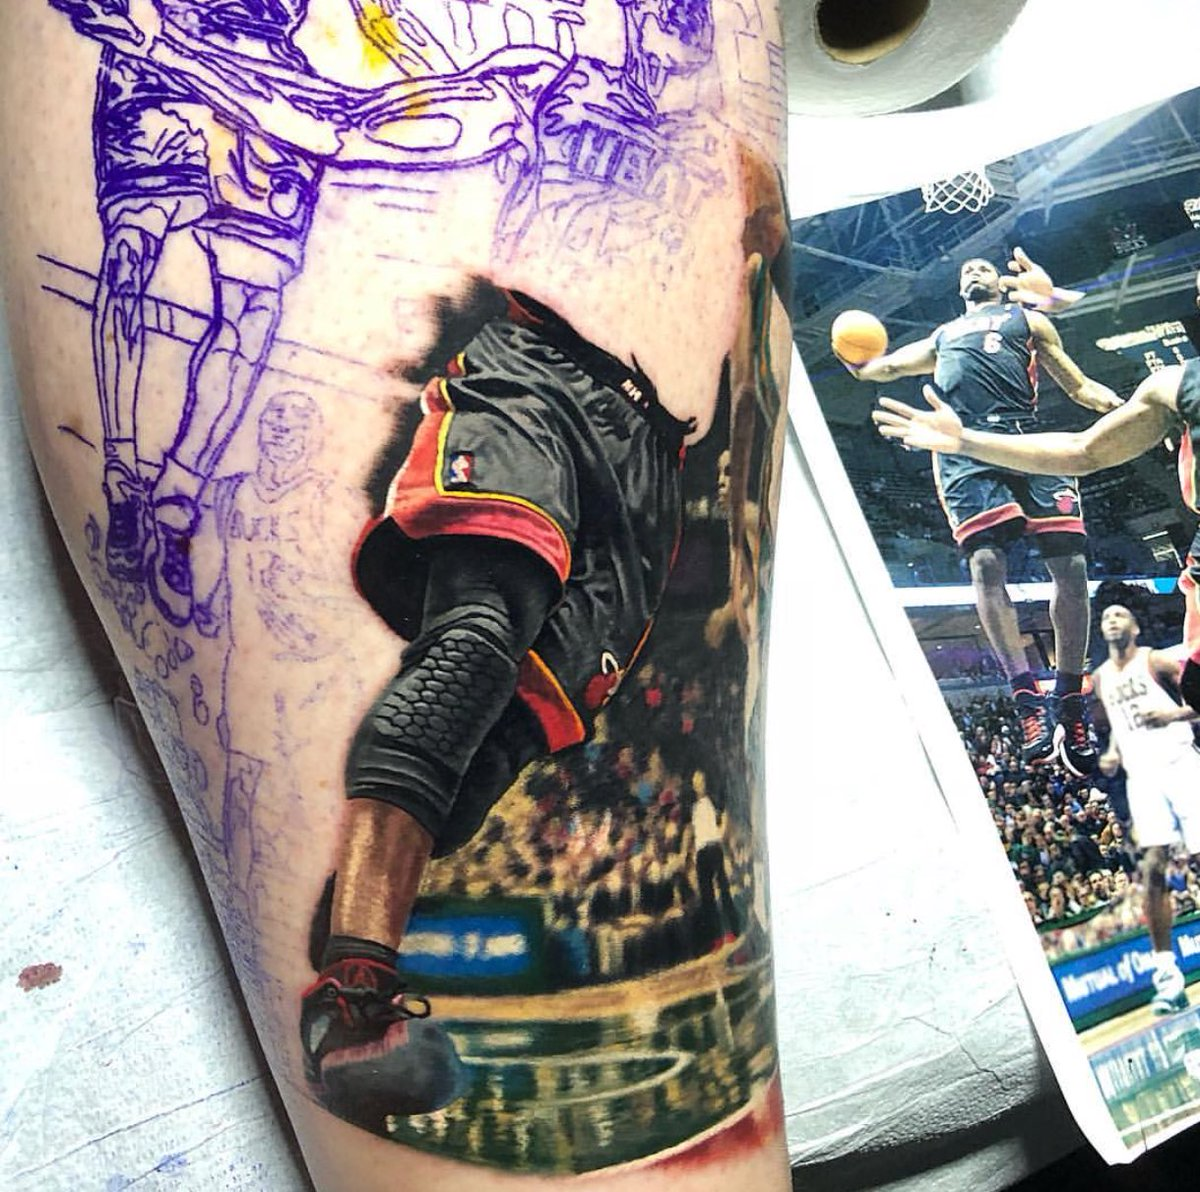 Tattoo artist Steve Butcher has been commissioned to tattoo the famous @KingJames &  dun@DwyaneWadek photo. Here's his work so far.